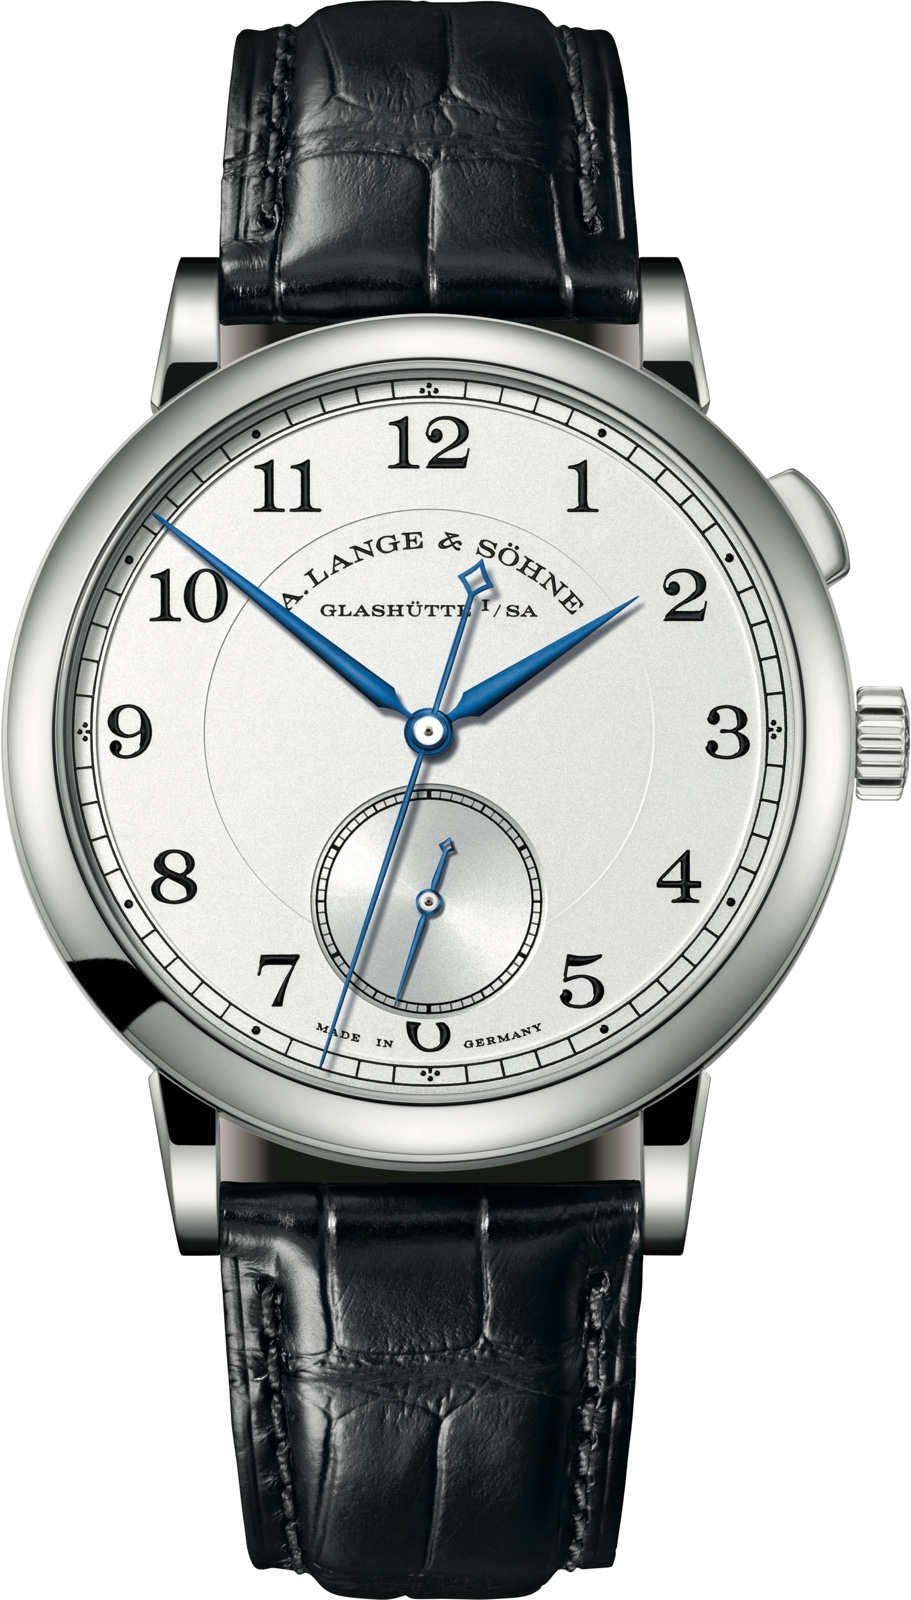 1815 Homage to Walter Lange White Gold